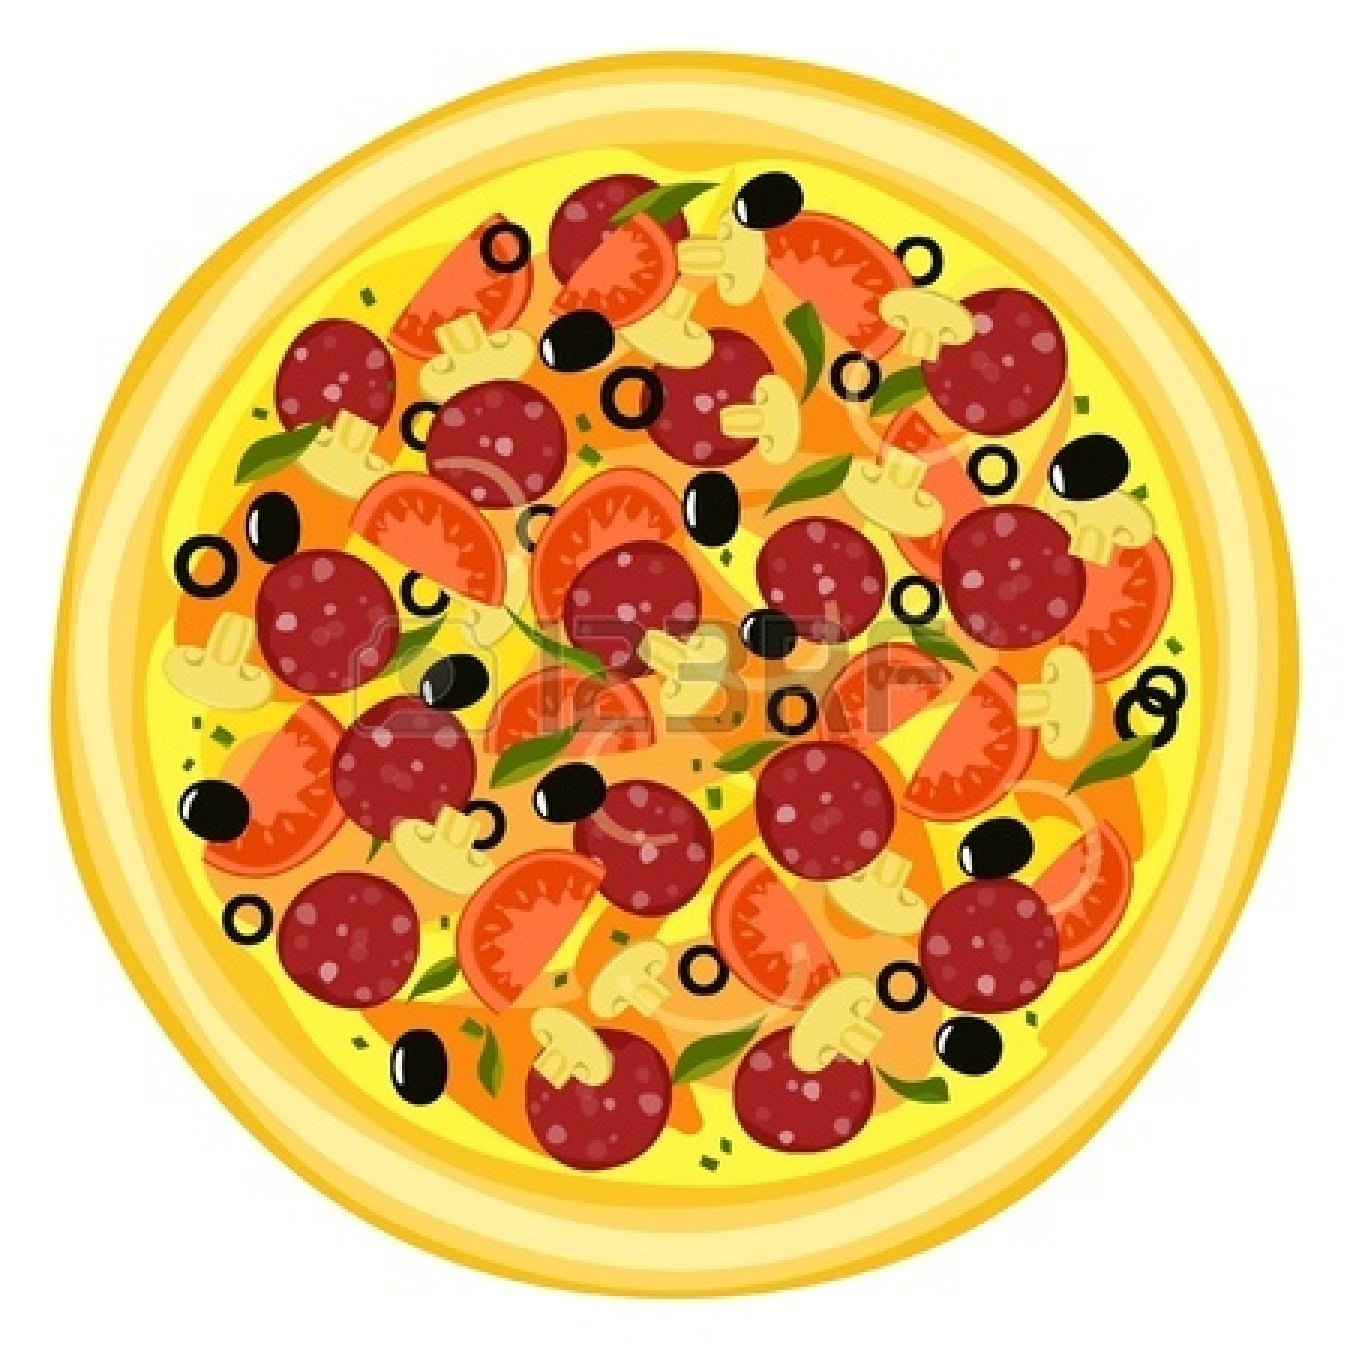 Pizza clip art free download clipart images 3 5.